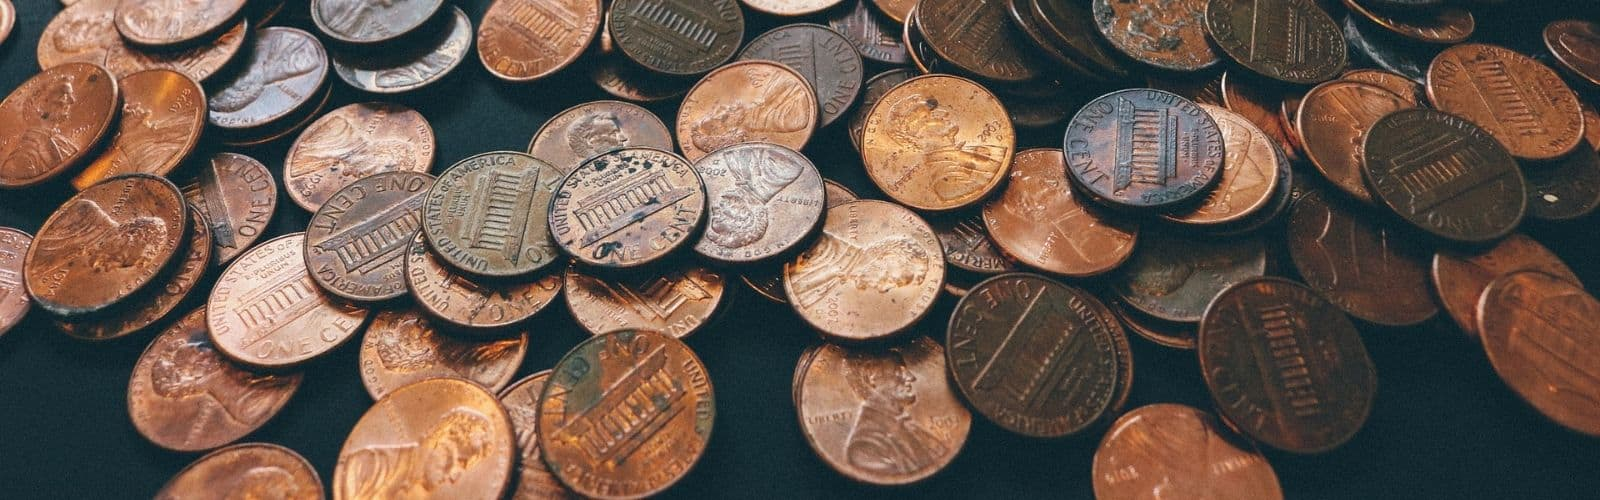 pennies on a table